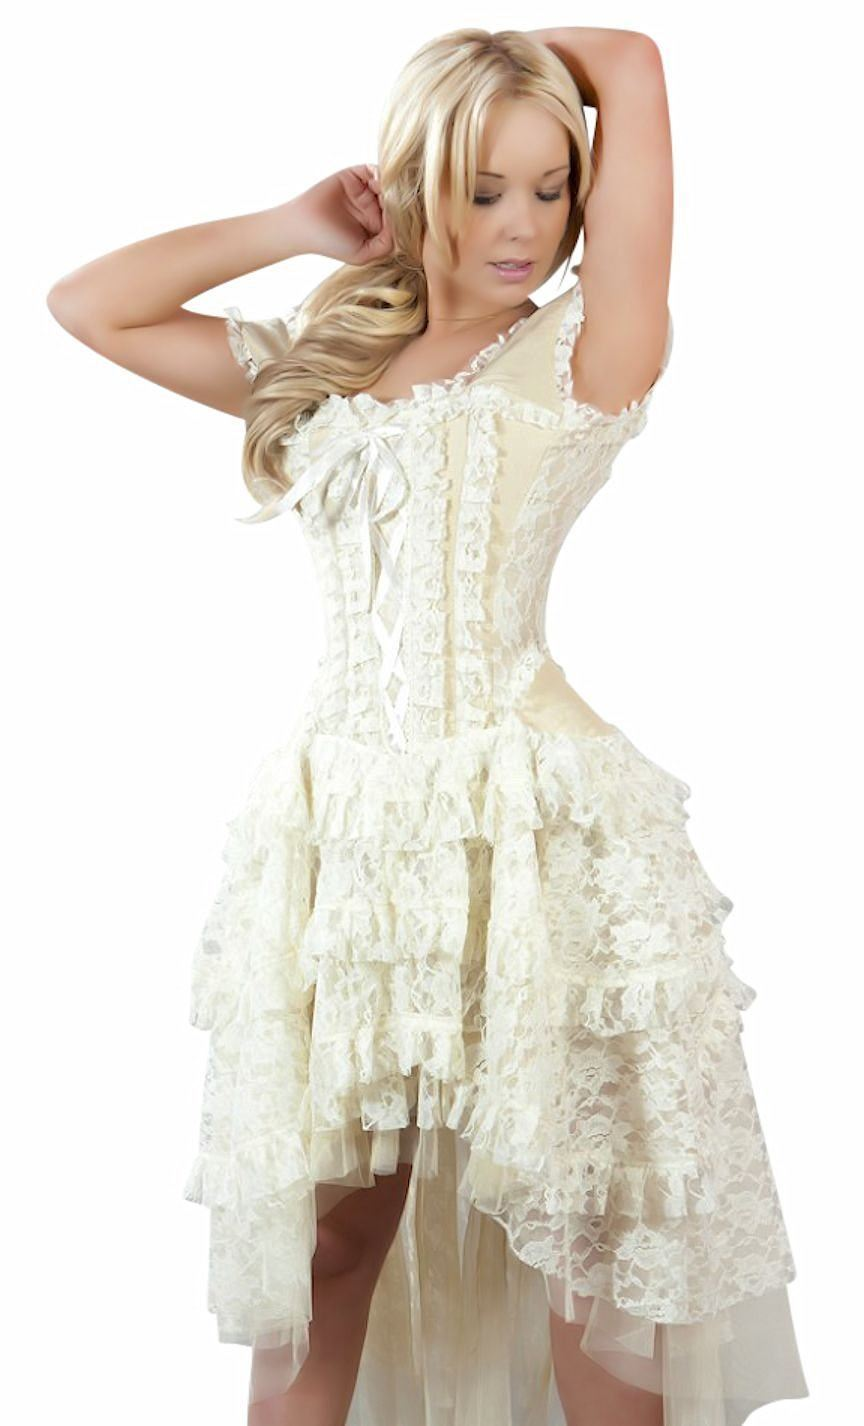 Ophelie corset dress cosplay steampunk victorian bridal by for Victorian corset wedding dresses